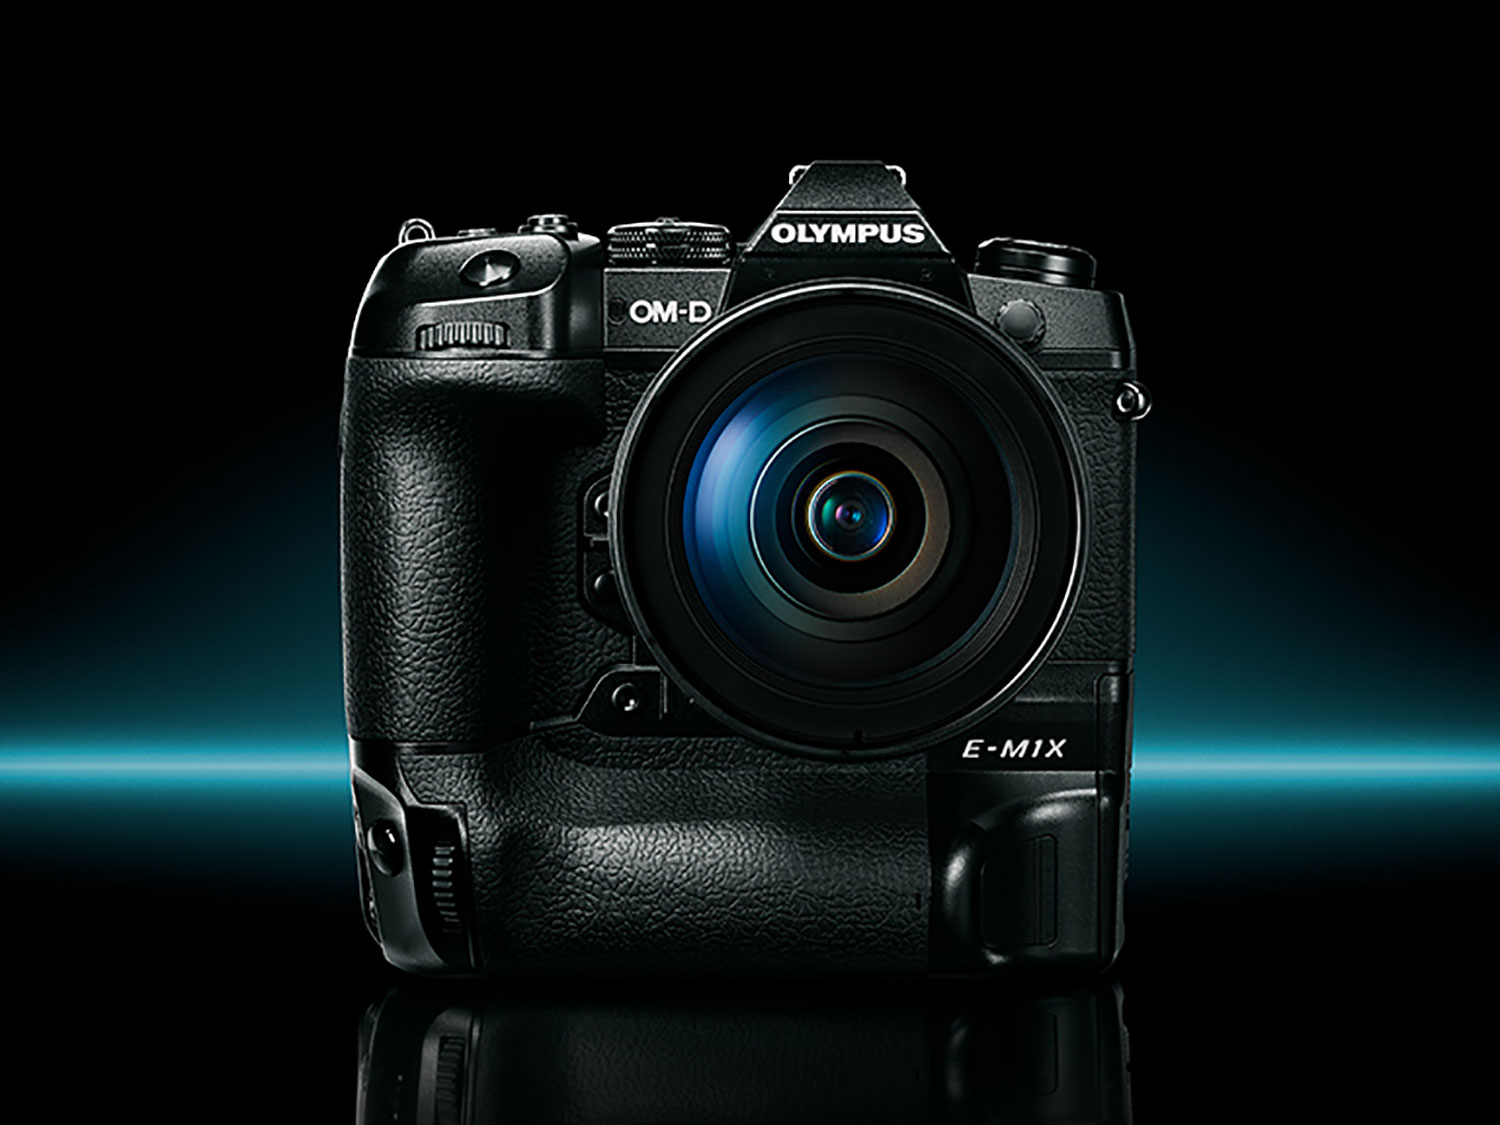 JUST ANNOUNCED: The Olympus OM-D E-M1X